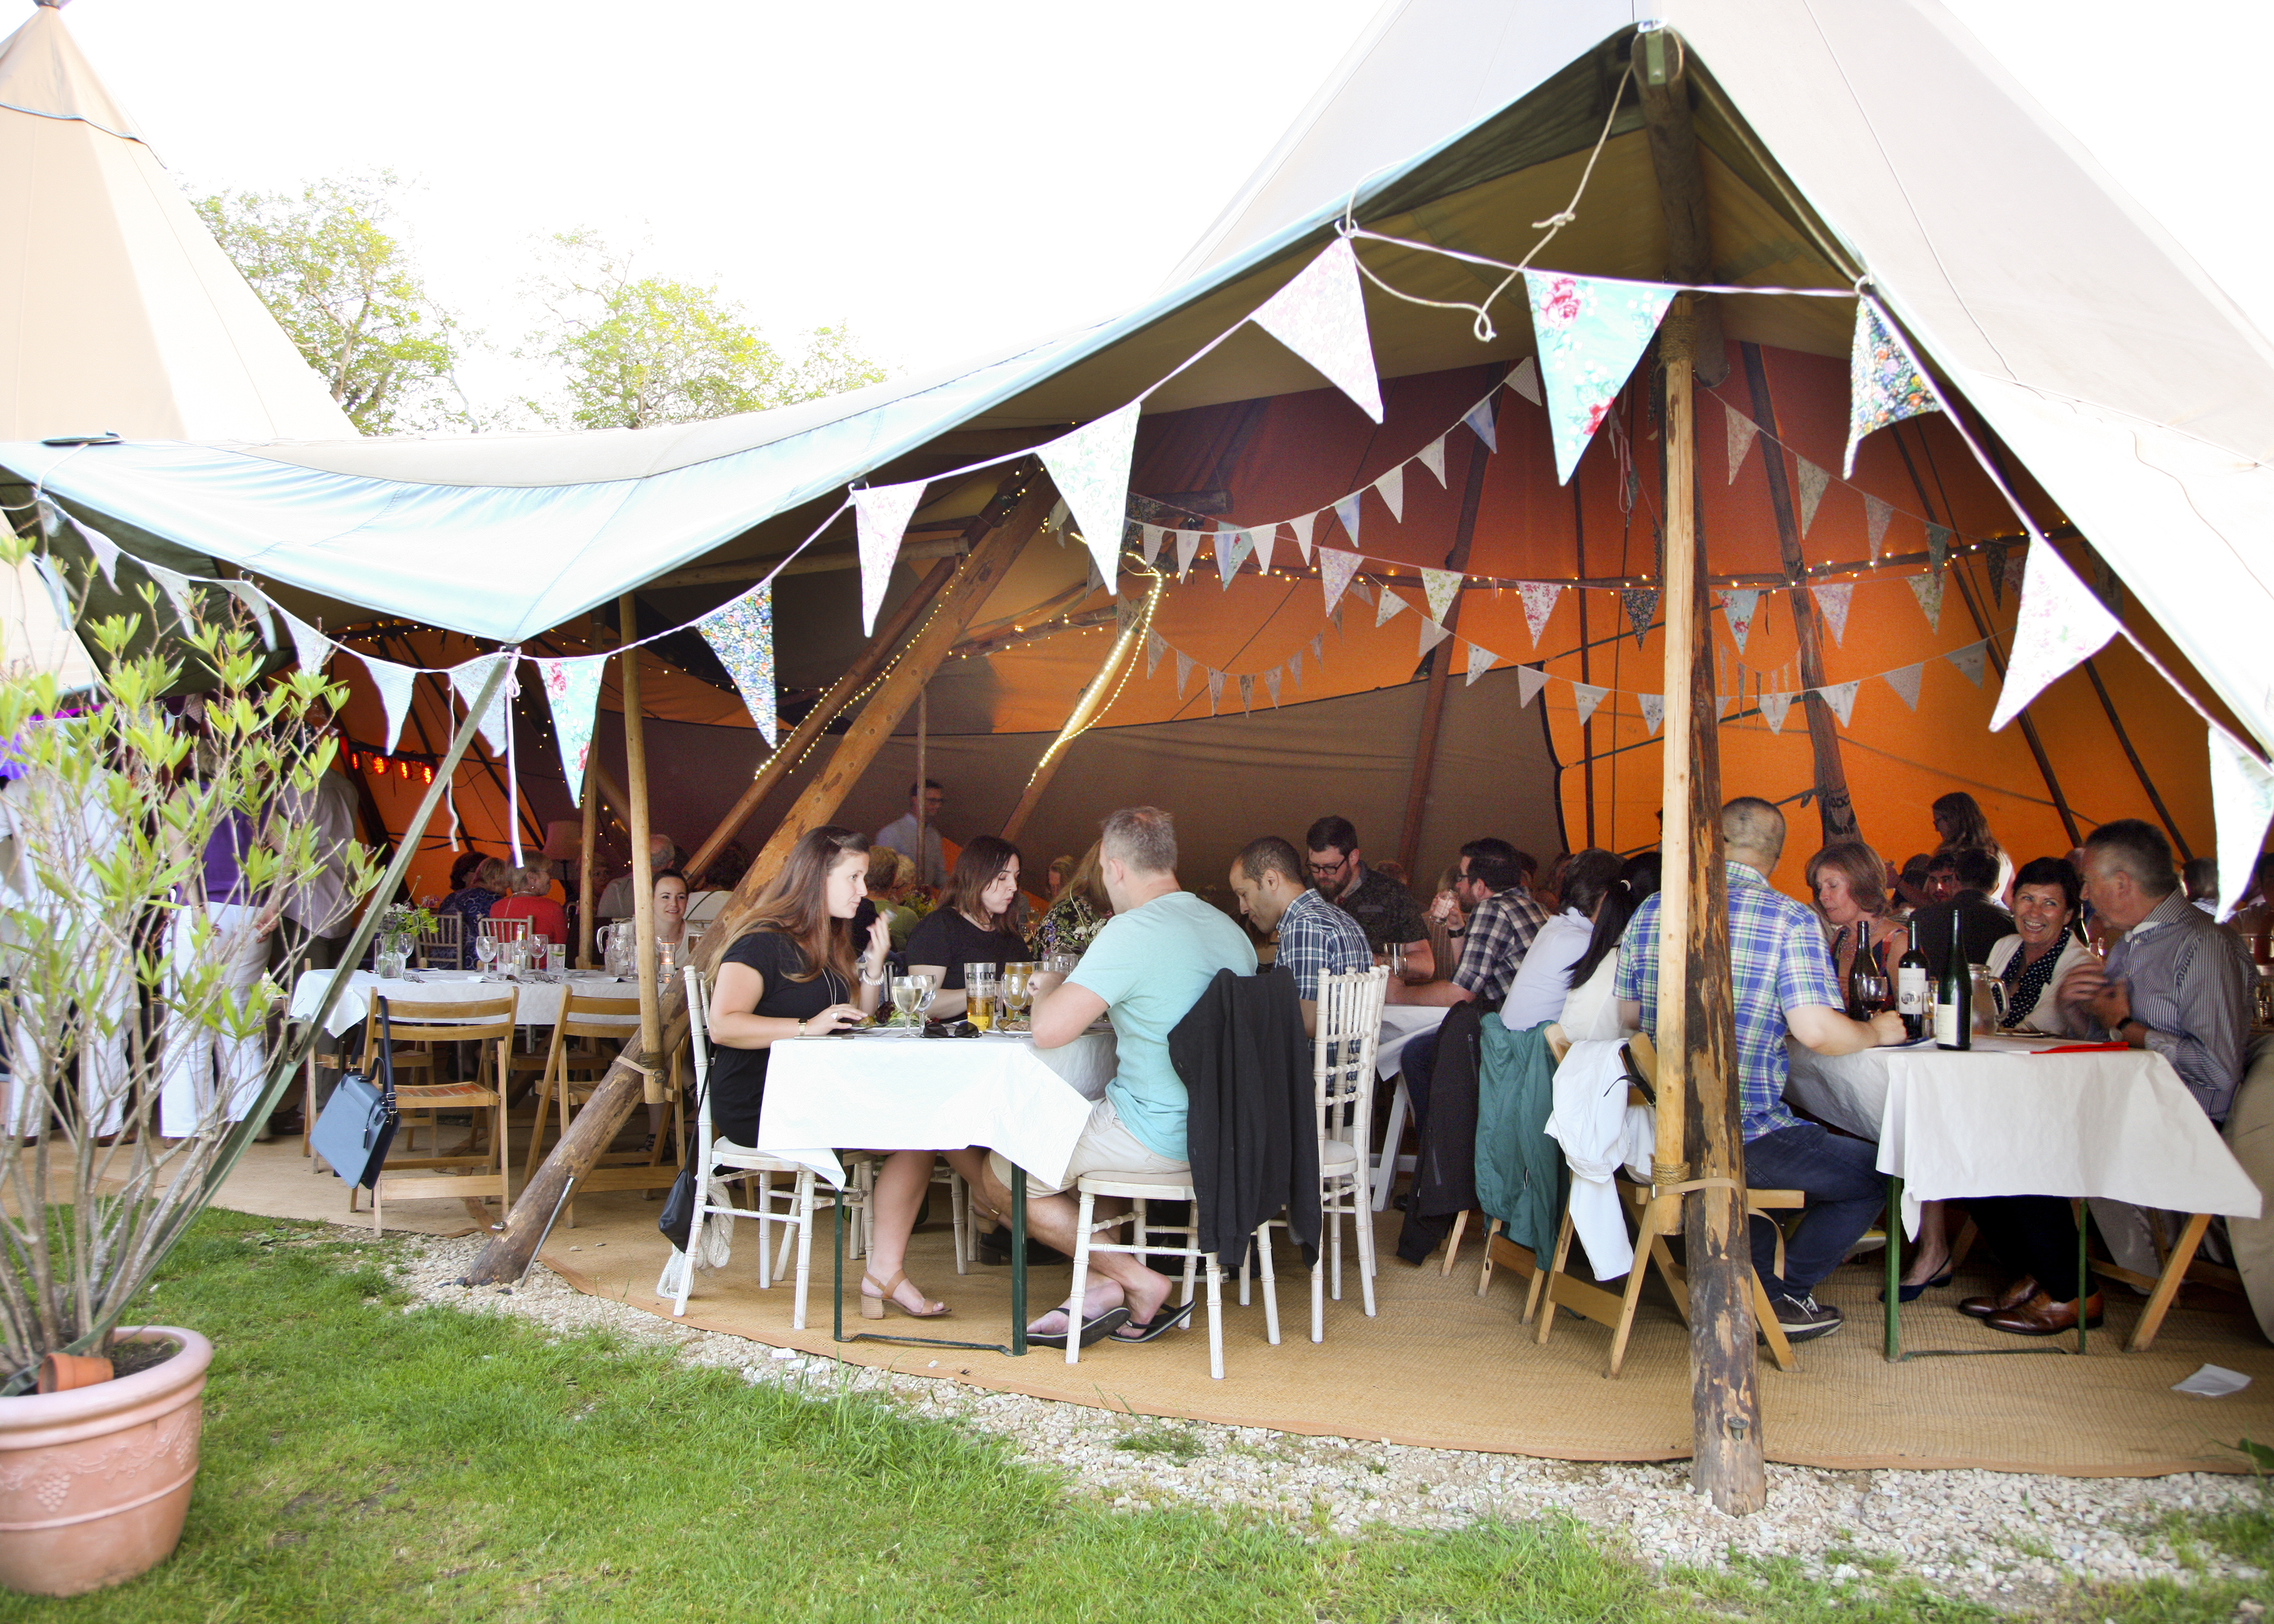 Relaxed dining in the tipi